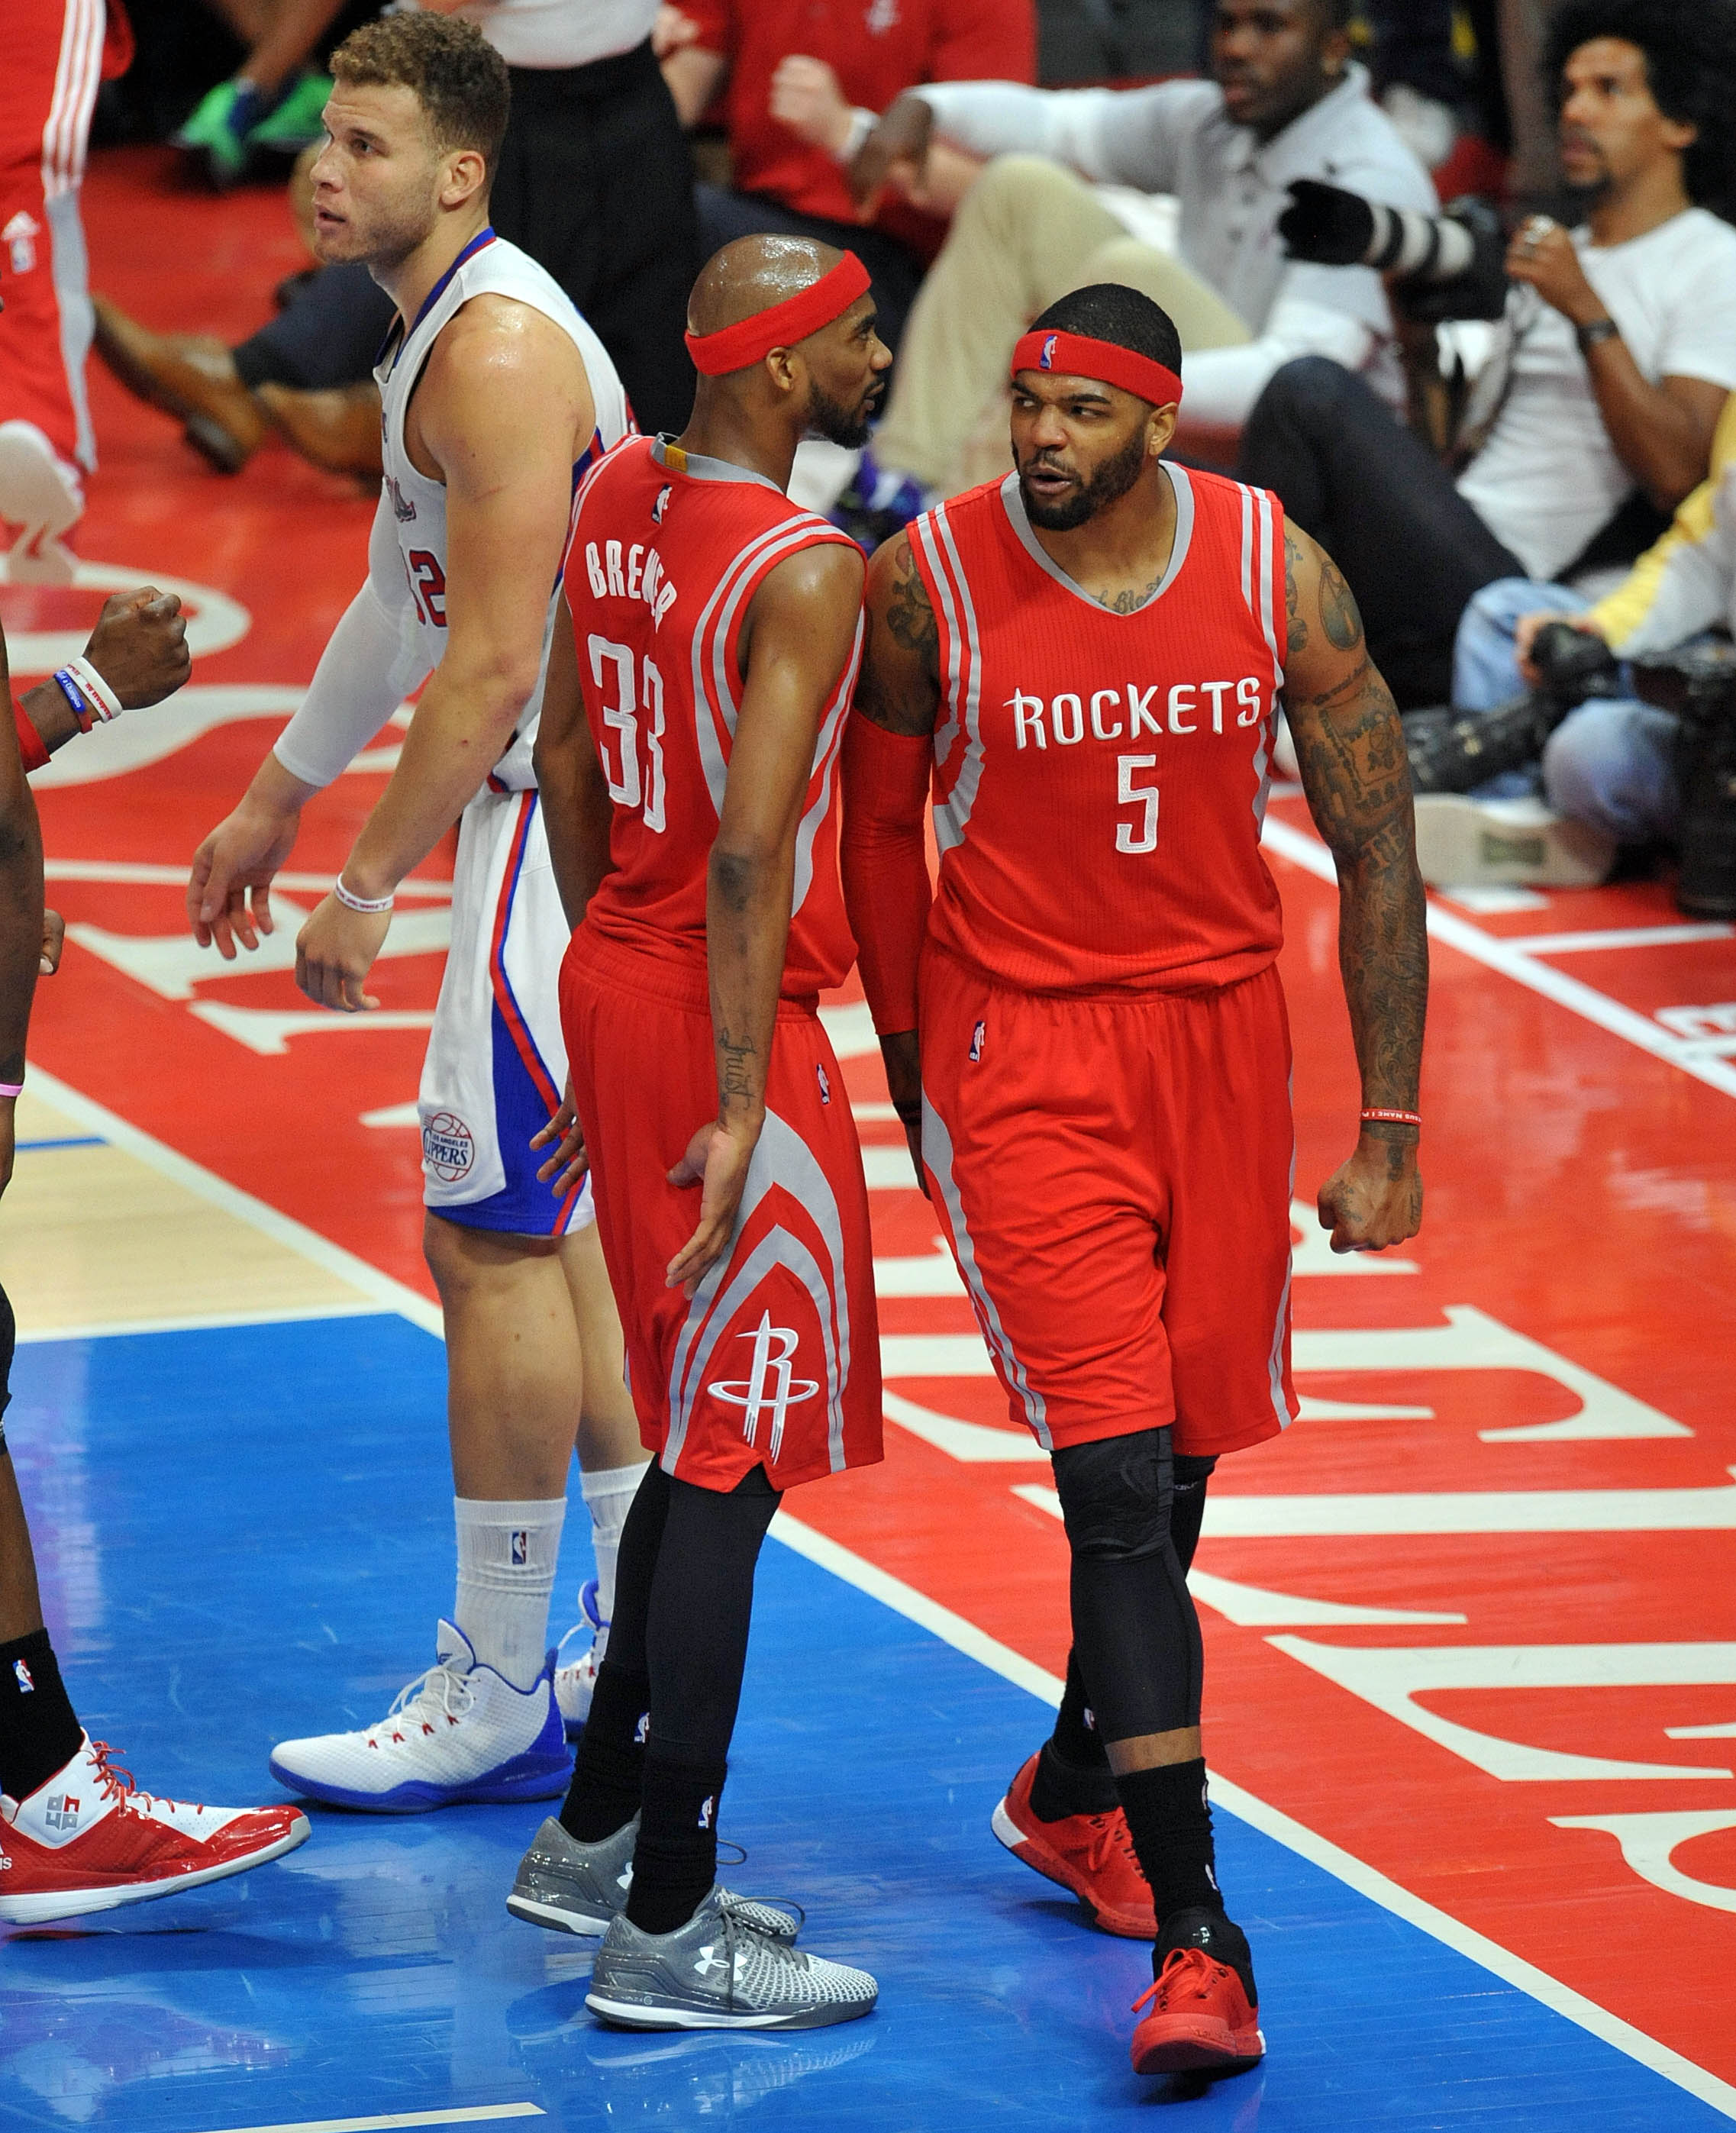 Houston Rockets Dream Shake: Rockets Vs. Clippers, NBA Playoffs 2015